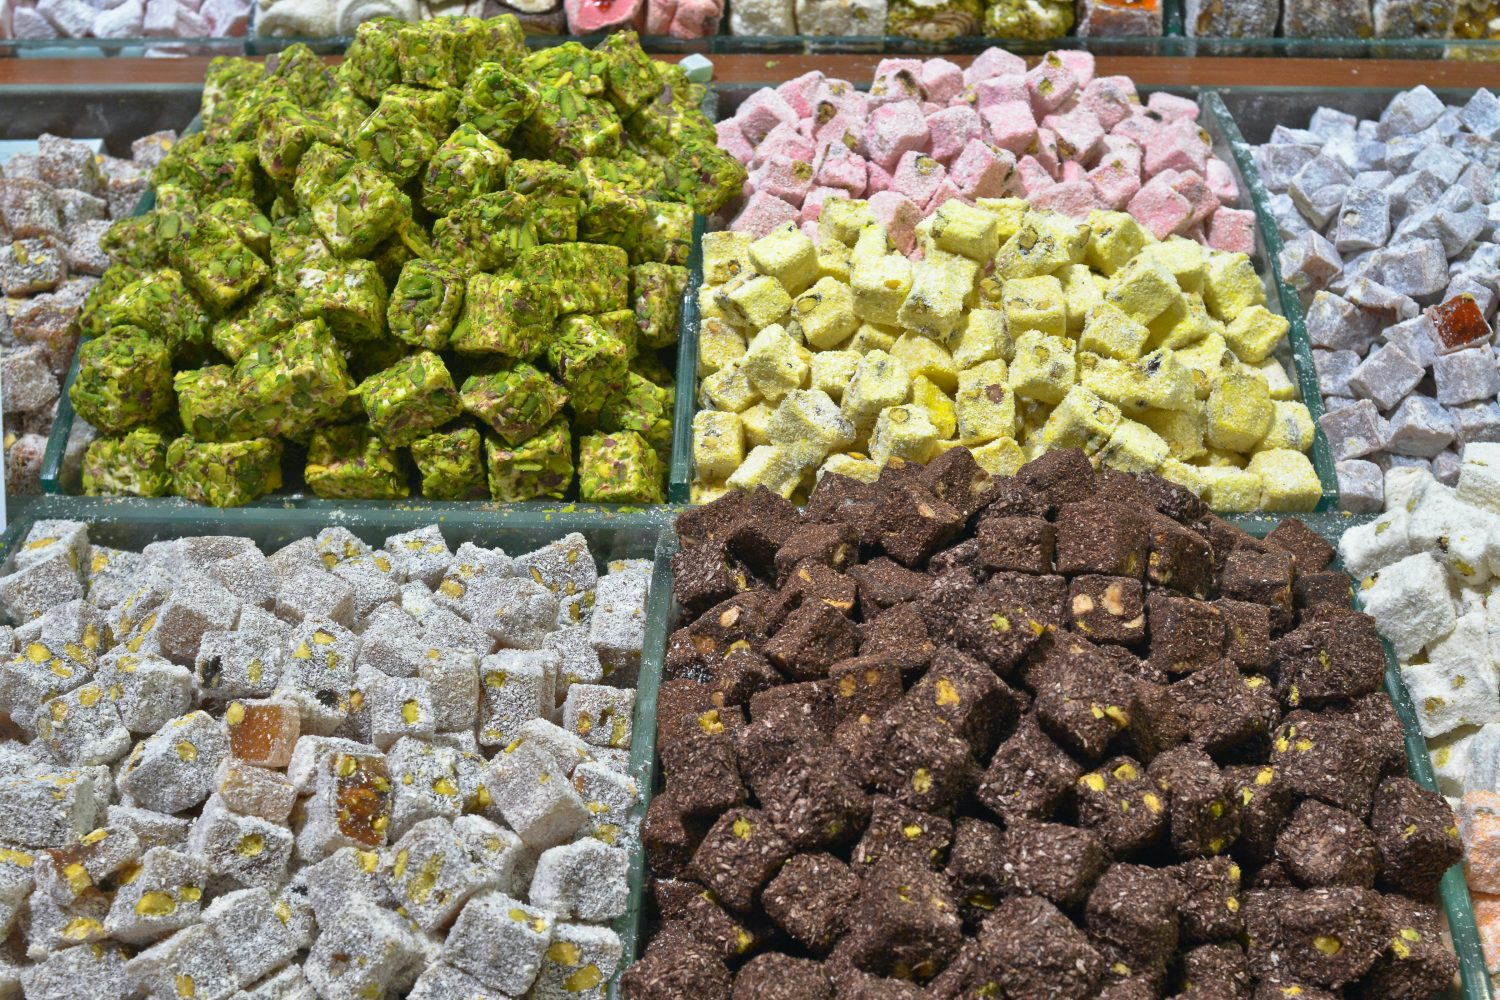 assorted color of stones on green plastic crate